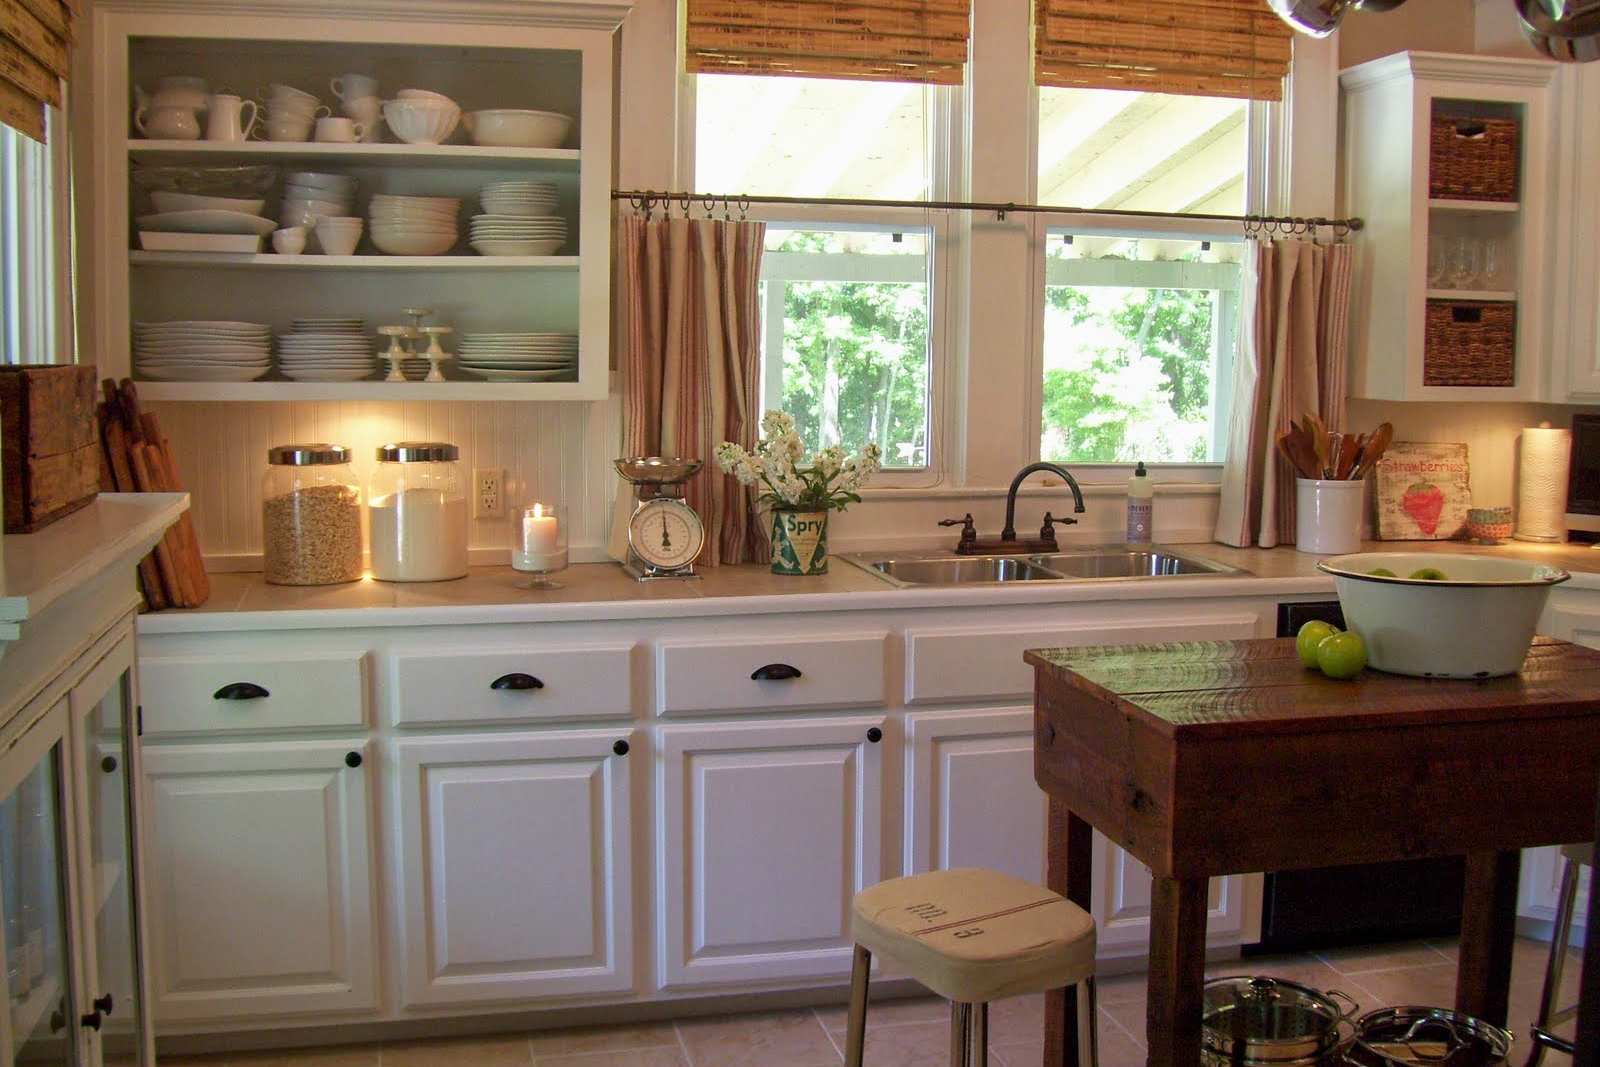 Kitchen Remodeling Ideas On A Budget Adorable Remodeling A Kitchen  Do It Yourself Kitchen Remodel Decorating Inspiration